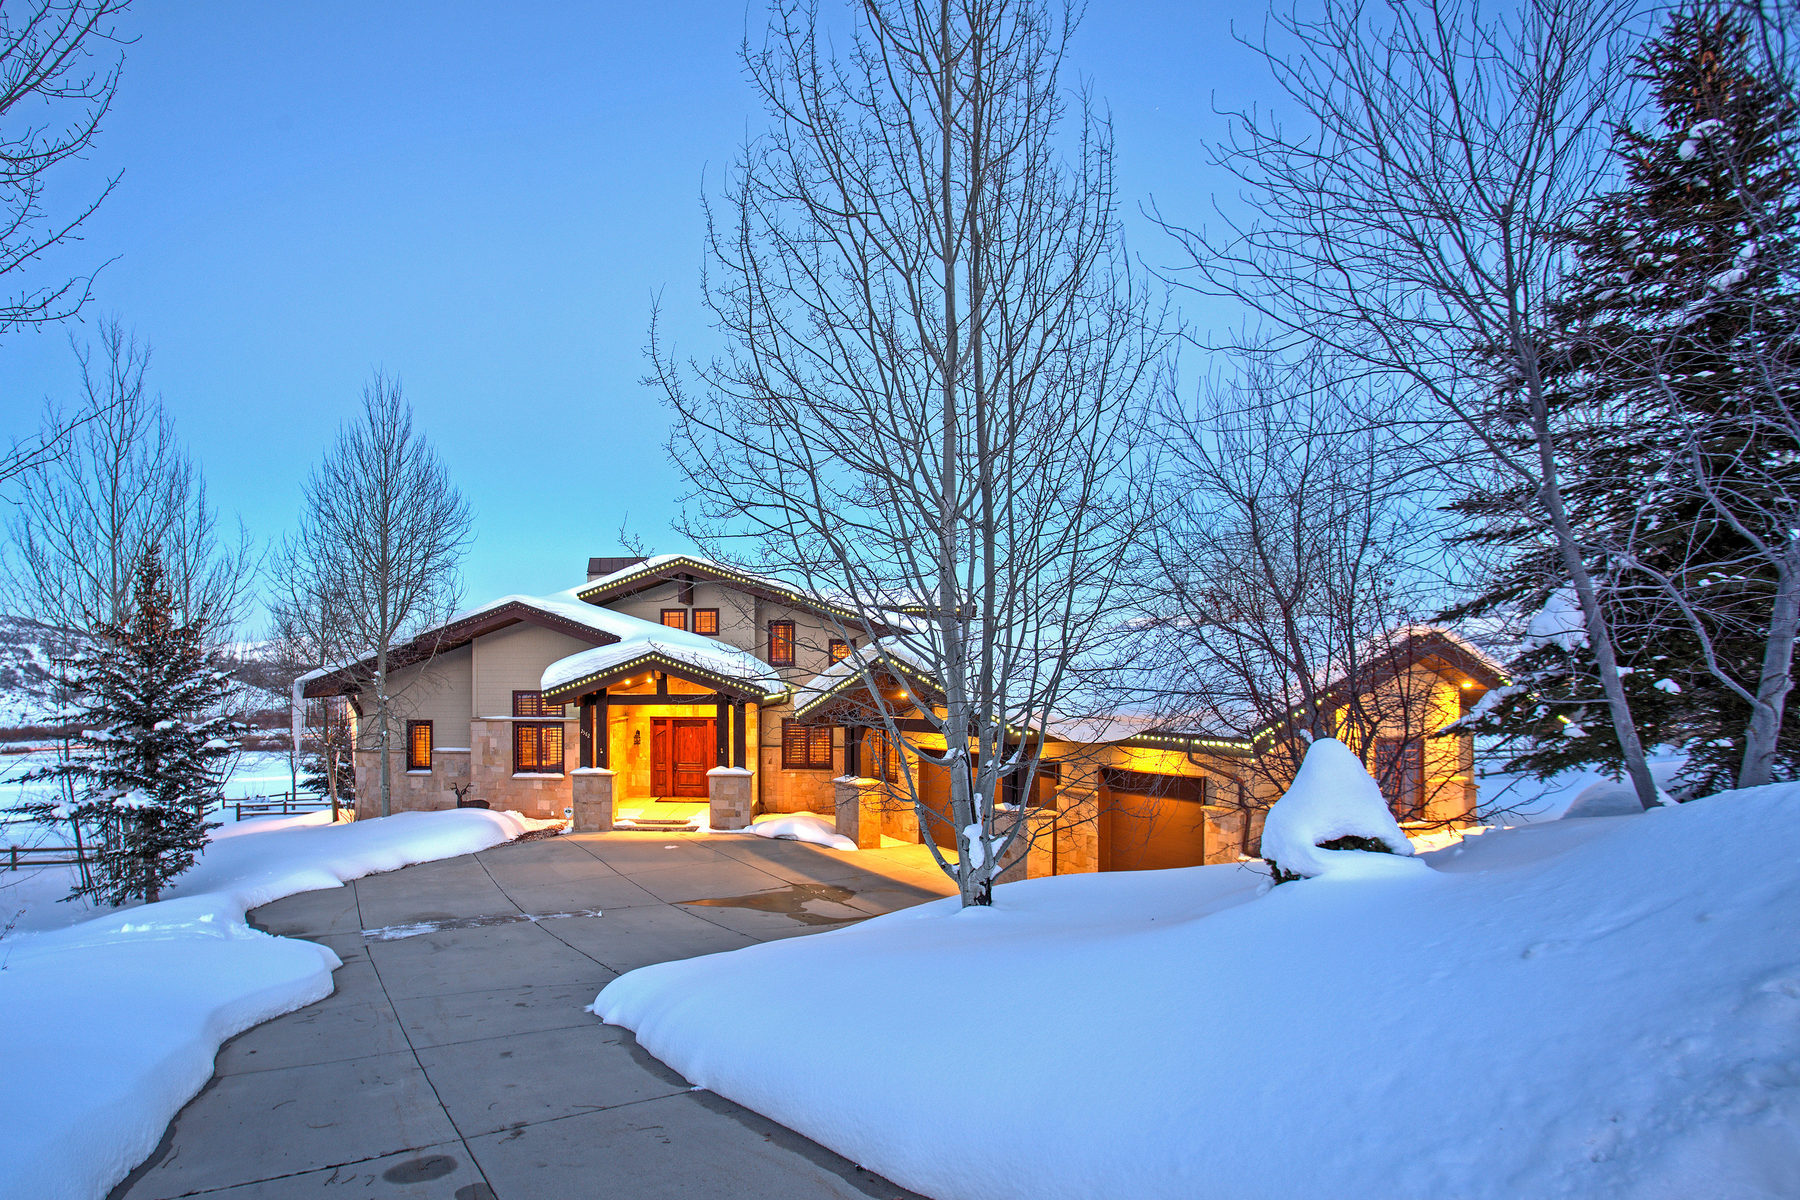 Casa para uma família para Venda às Stunning Entertainer's Residence in the Heart of Park City 2582 Aspen Springs Dr Park City, Utah, 84060 Estados Unidos